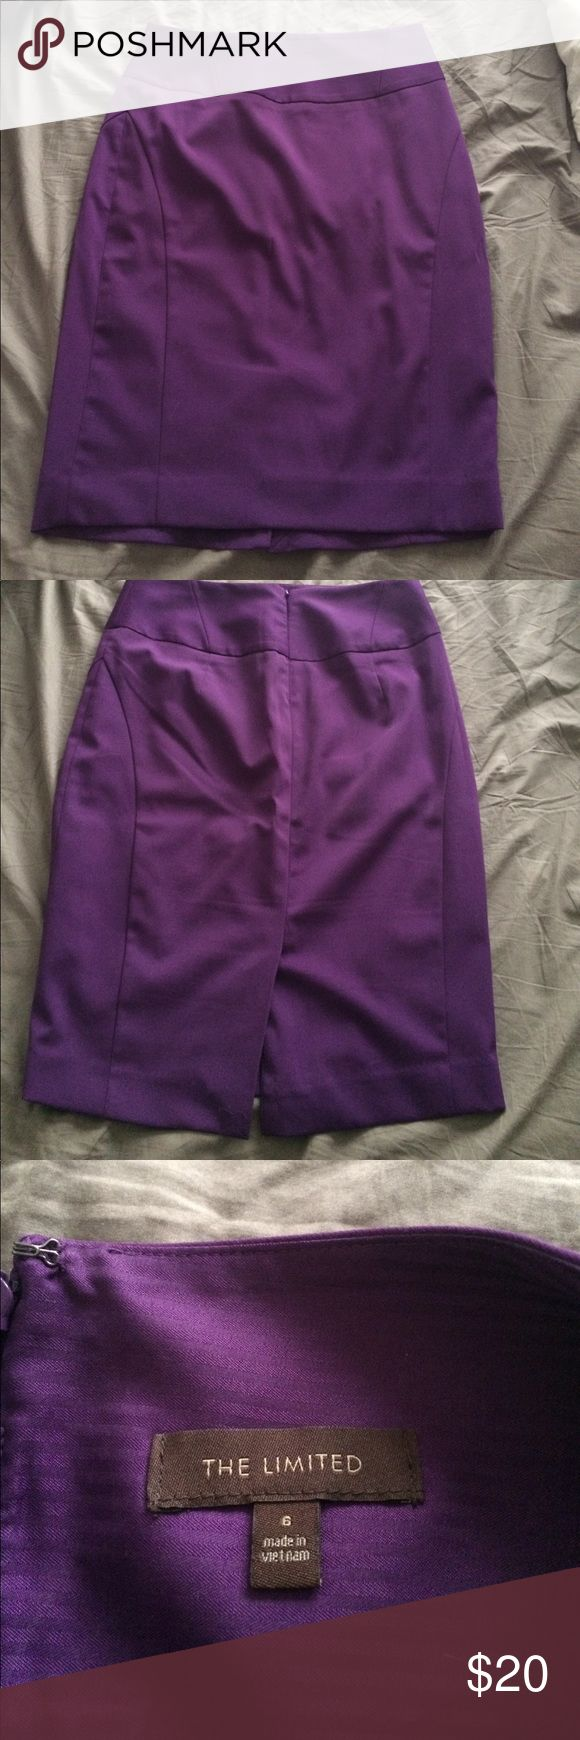 Bright Purple High Waisted Pencil Skirt High waist pencil skirt from The Limited. Skipper on back with slight slit at bottom. Skirt has stitching to give the body a nice hour glass shape. Skirt is lined. Size 6 The Limited Skirts Pencil